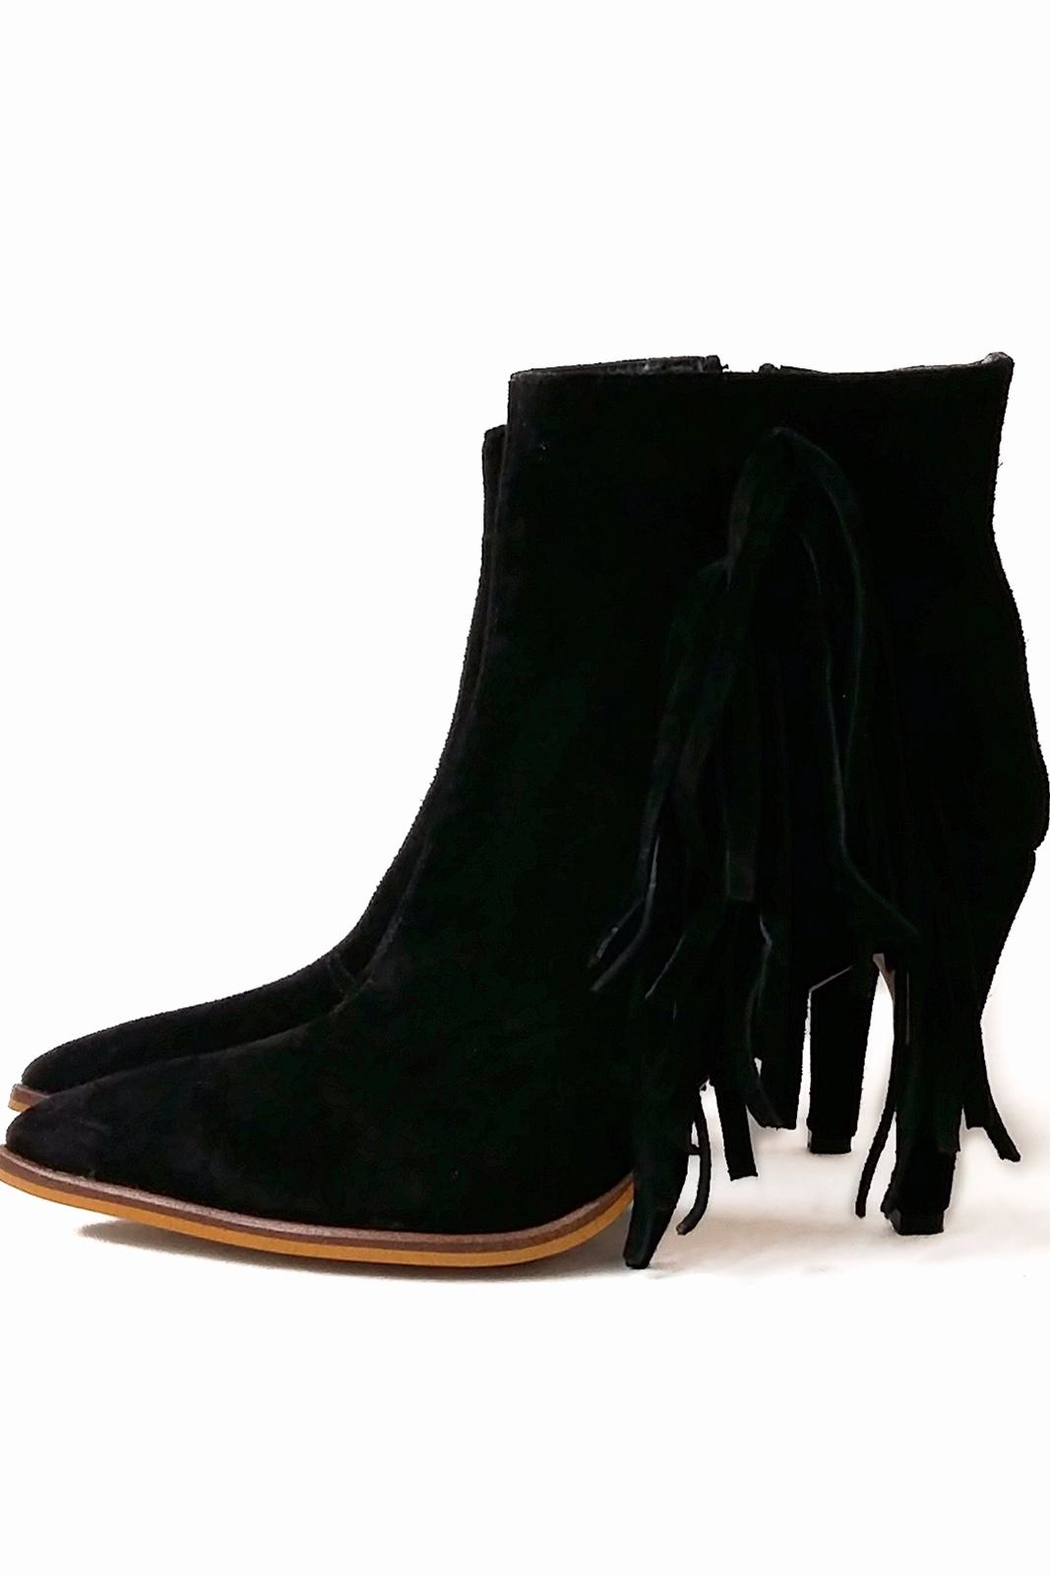 MIYE COLLAZZO Black Suede Bootie - Front Full Image